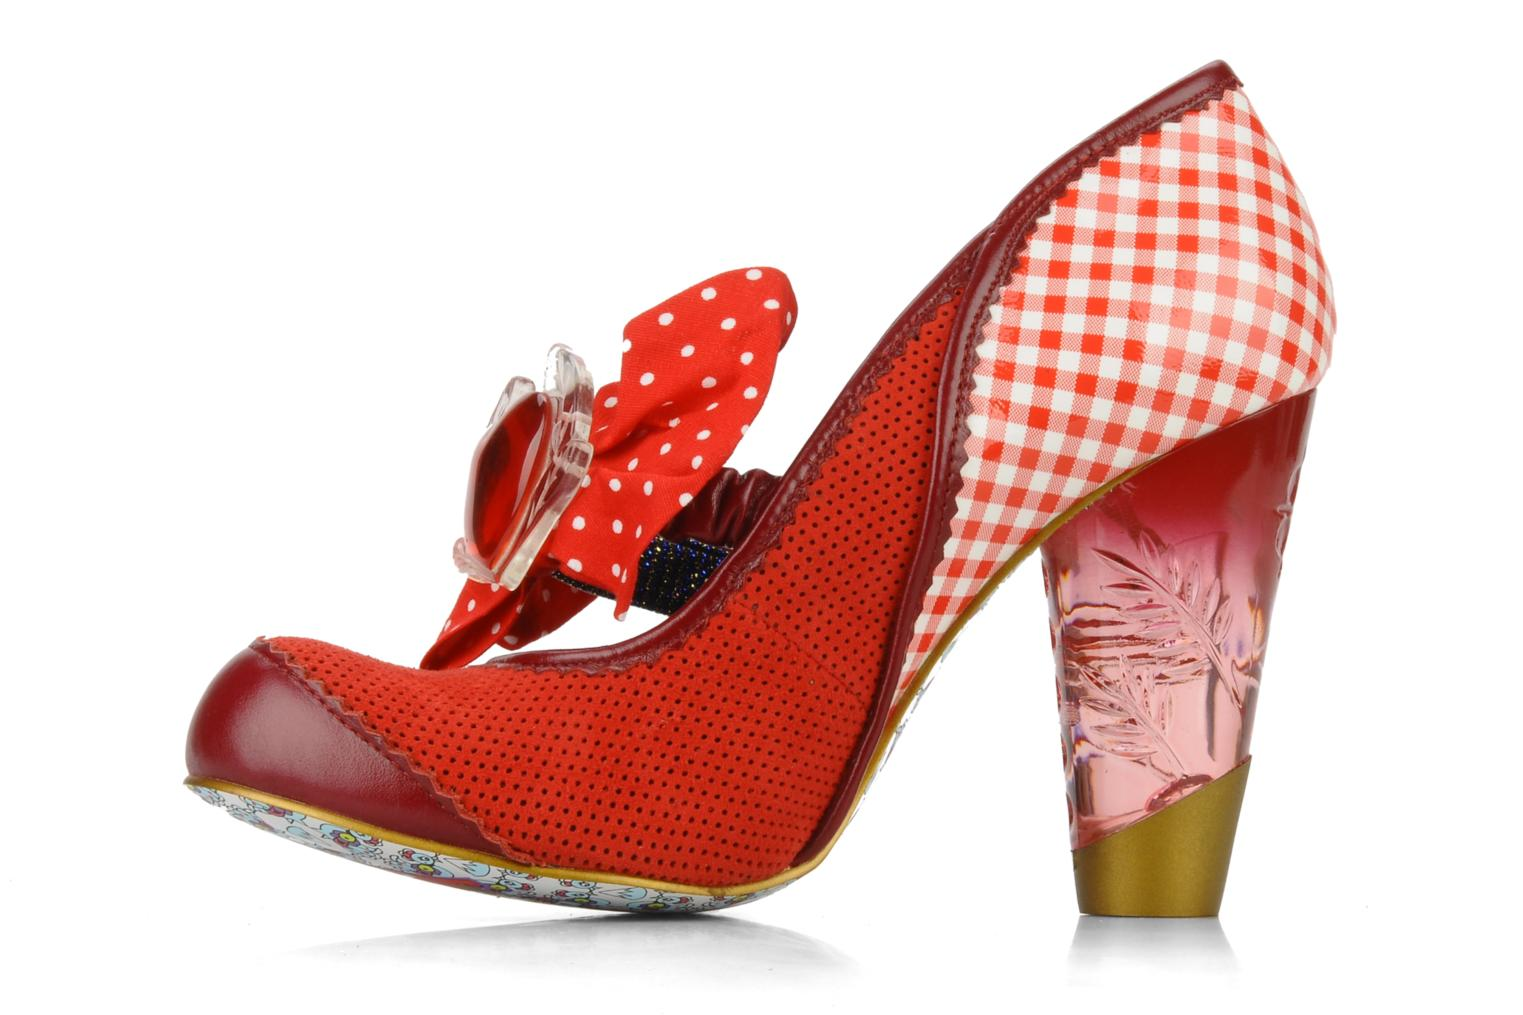 Décolleté Irregular choice I'm from bury Rosso immagine frontale